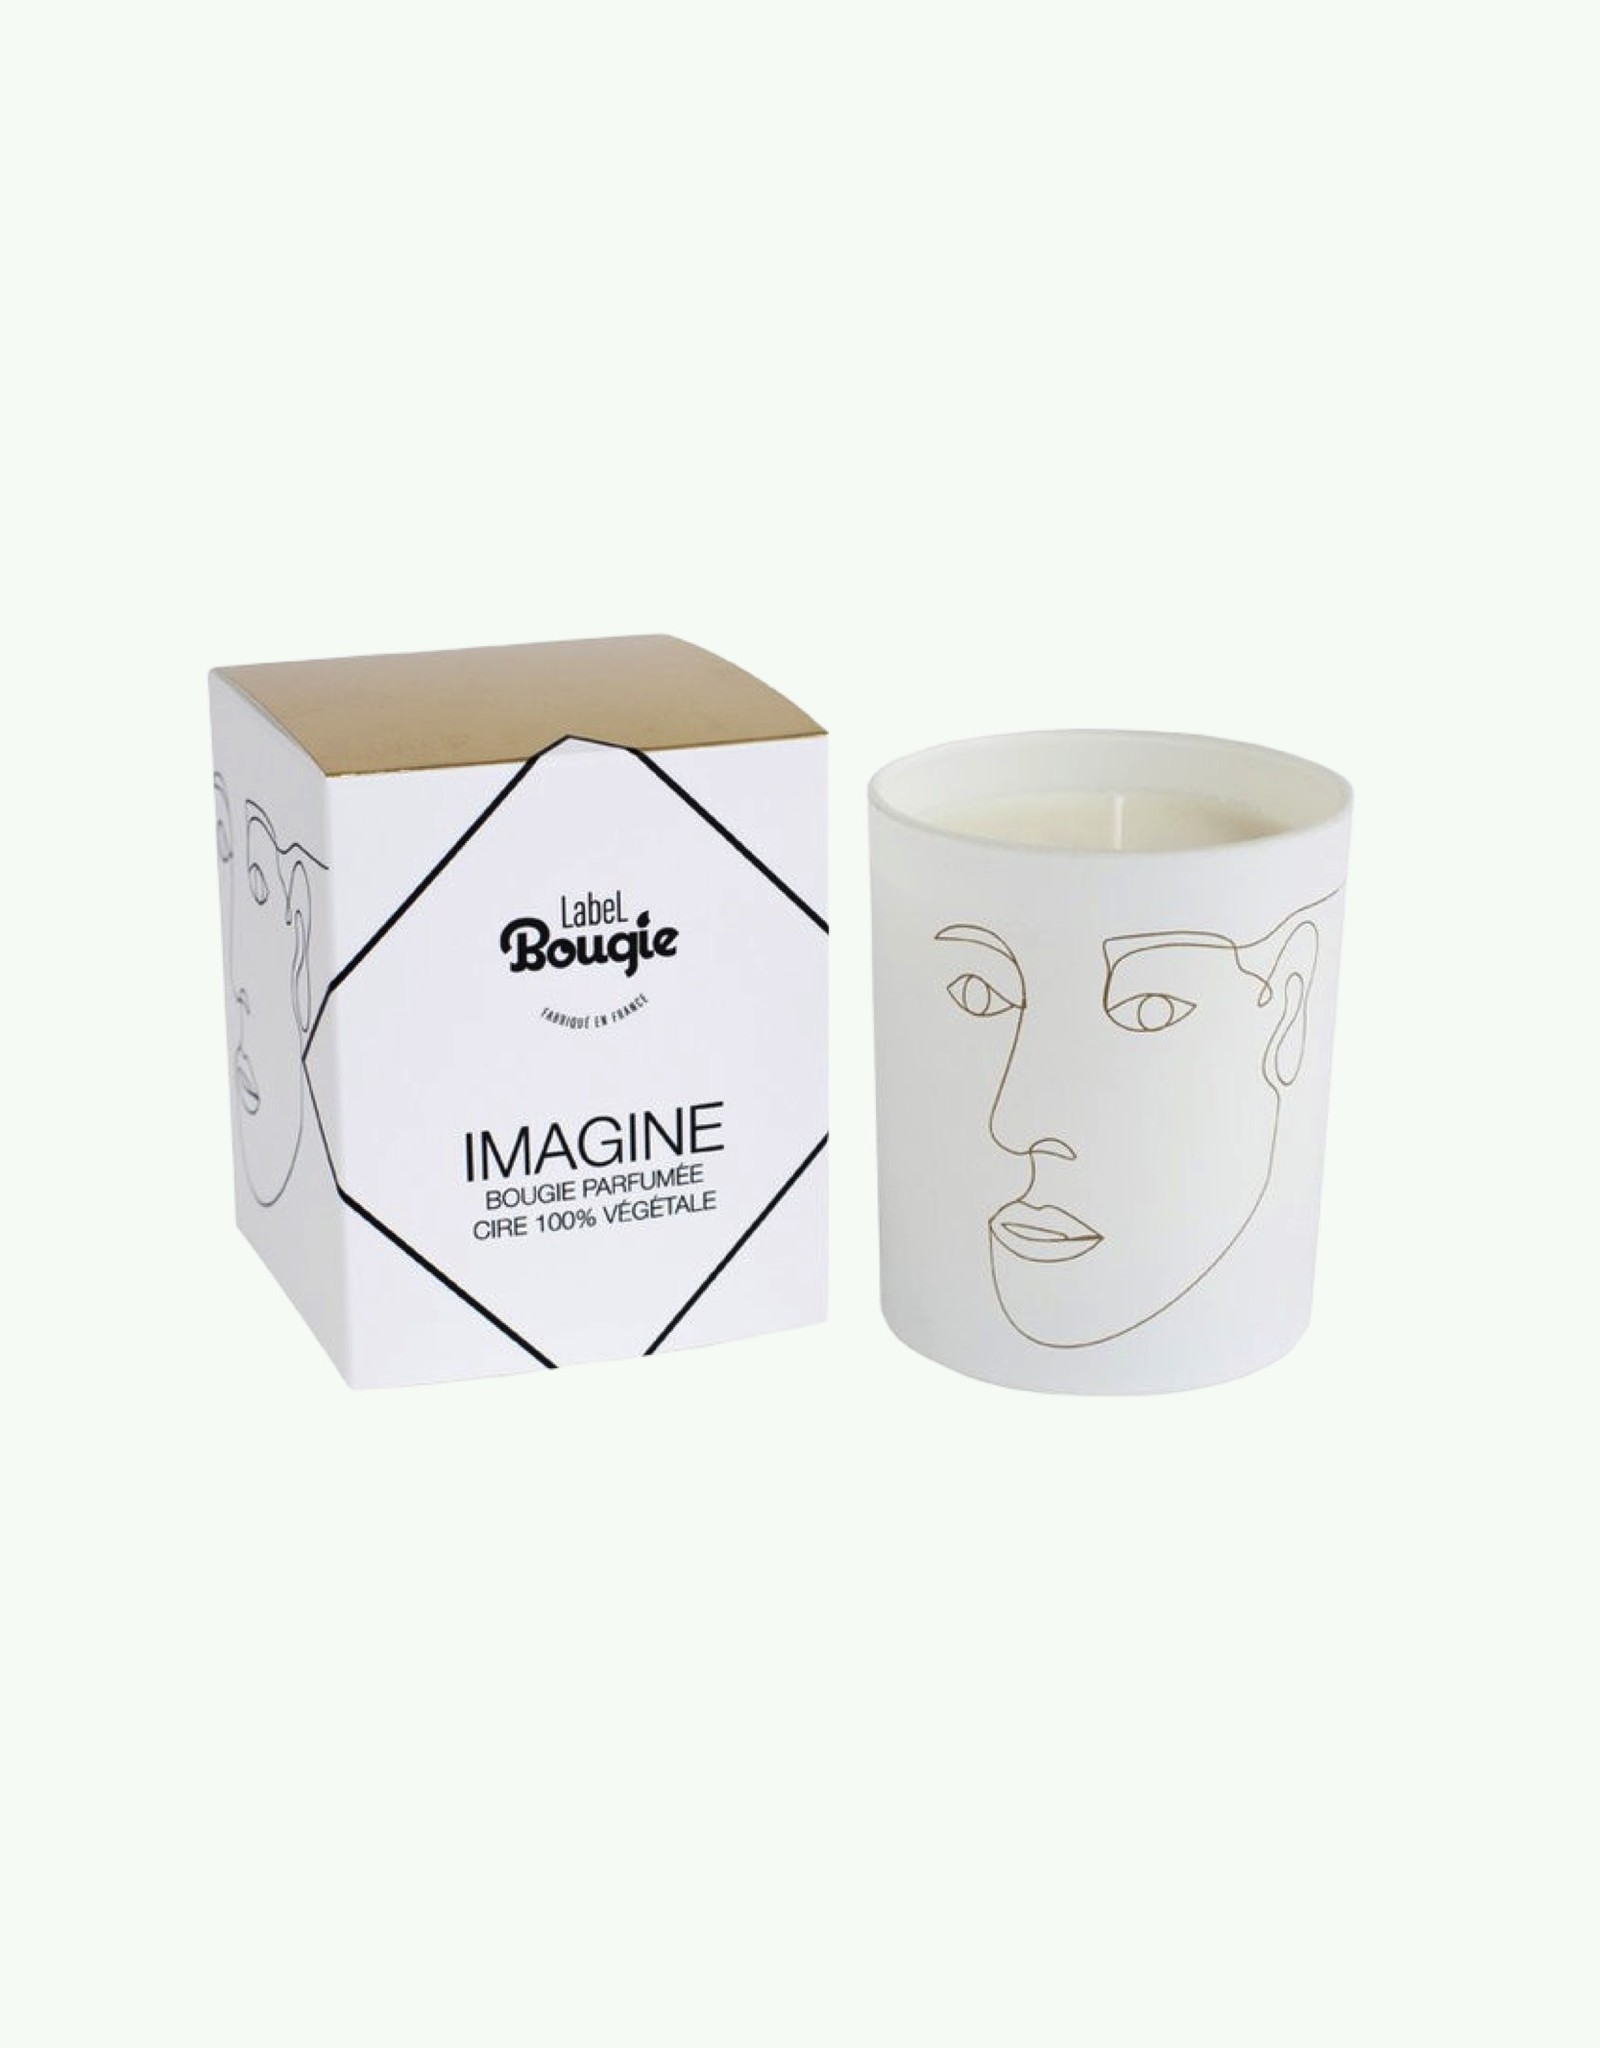 Label Bougie Label Bougie - Imagine - Candle